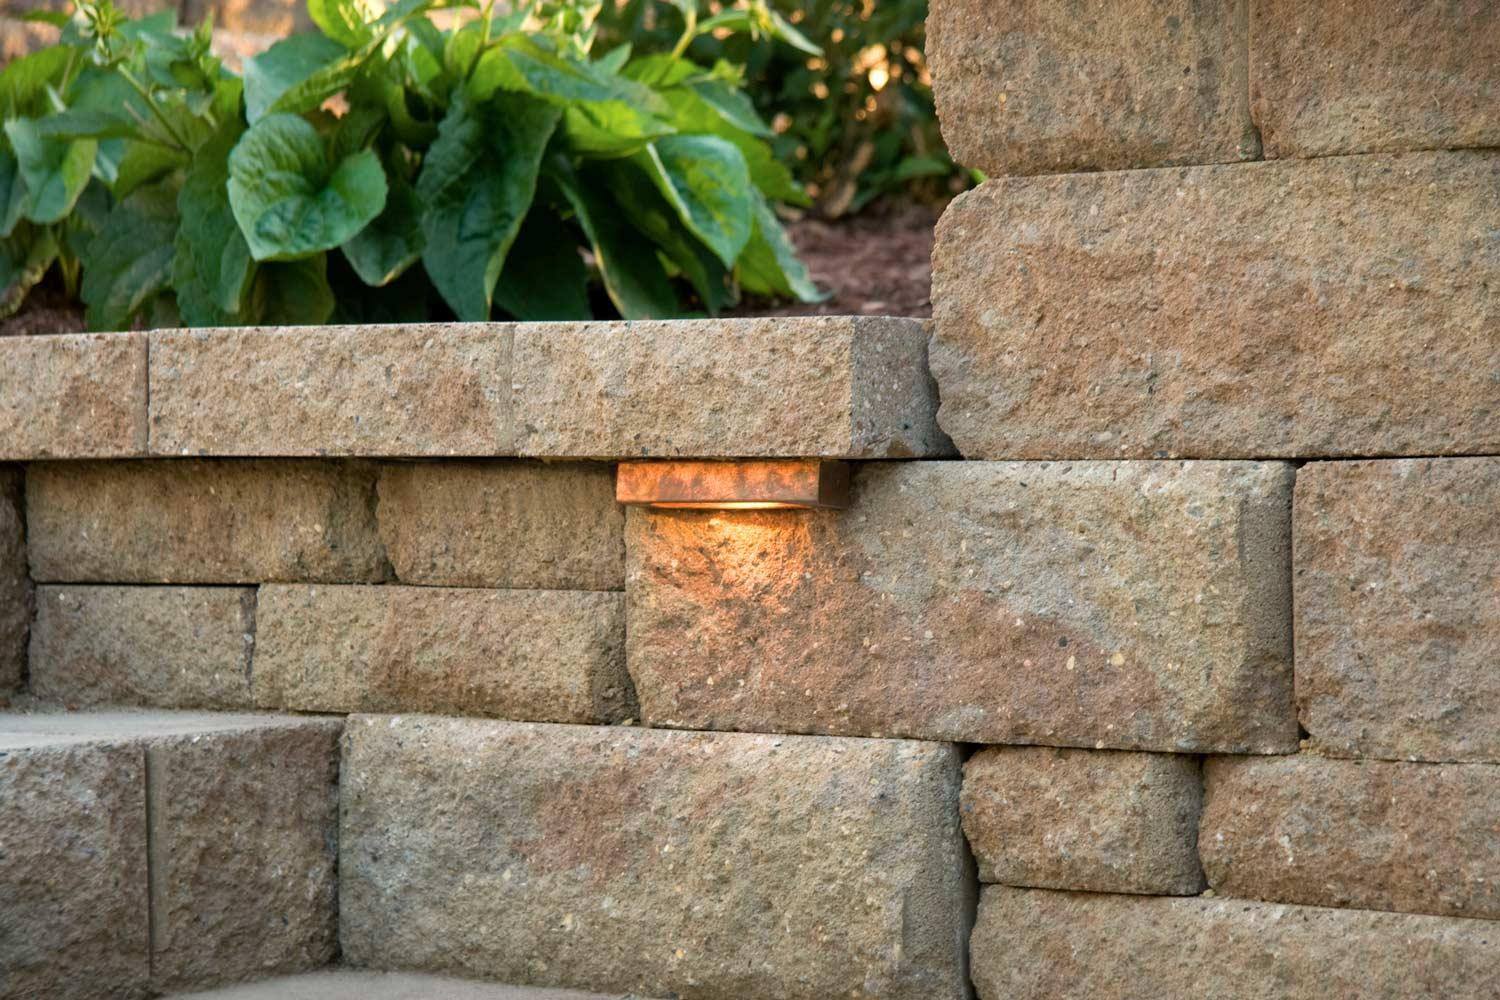 Modular block retaining wall with naturalistic texturing and integrated lighting.